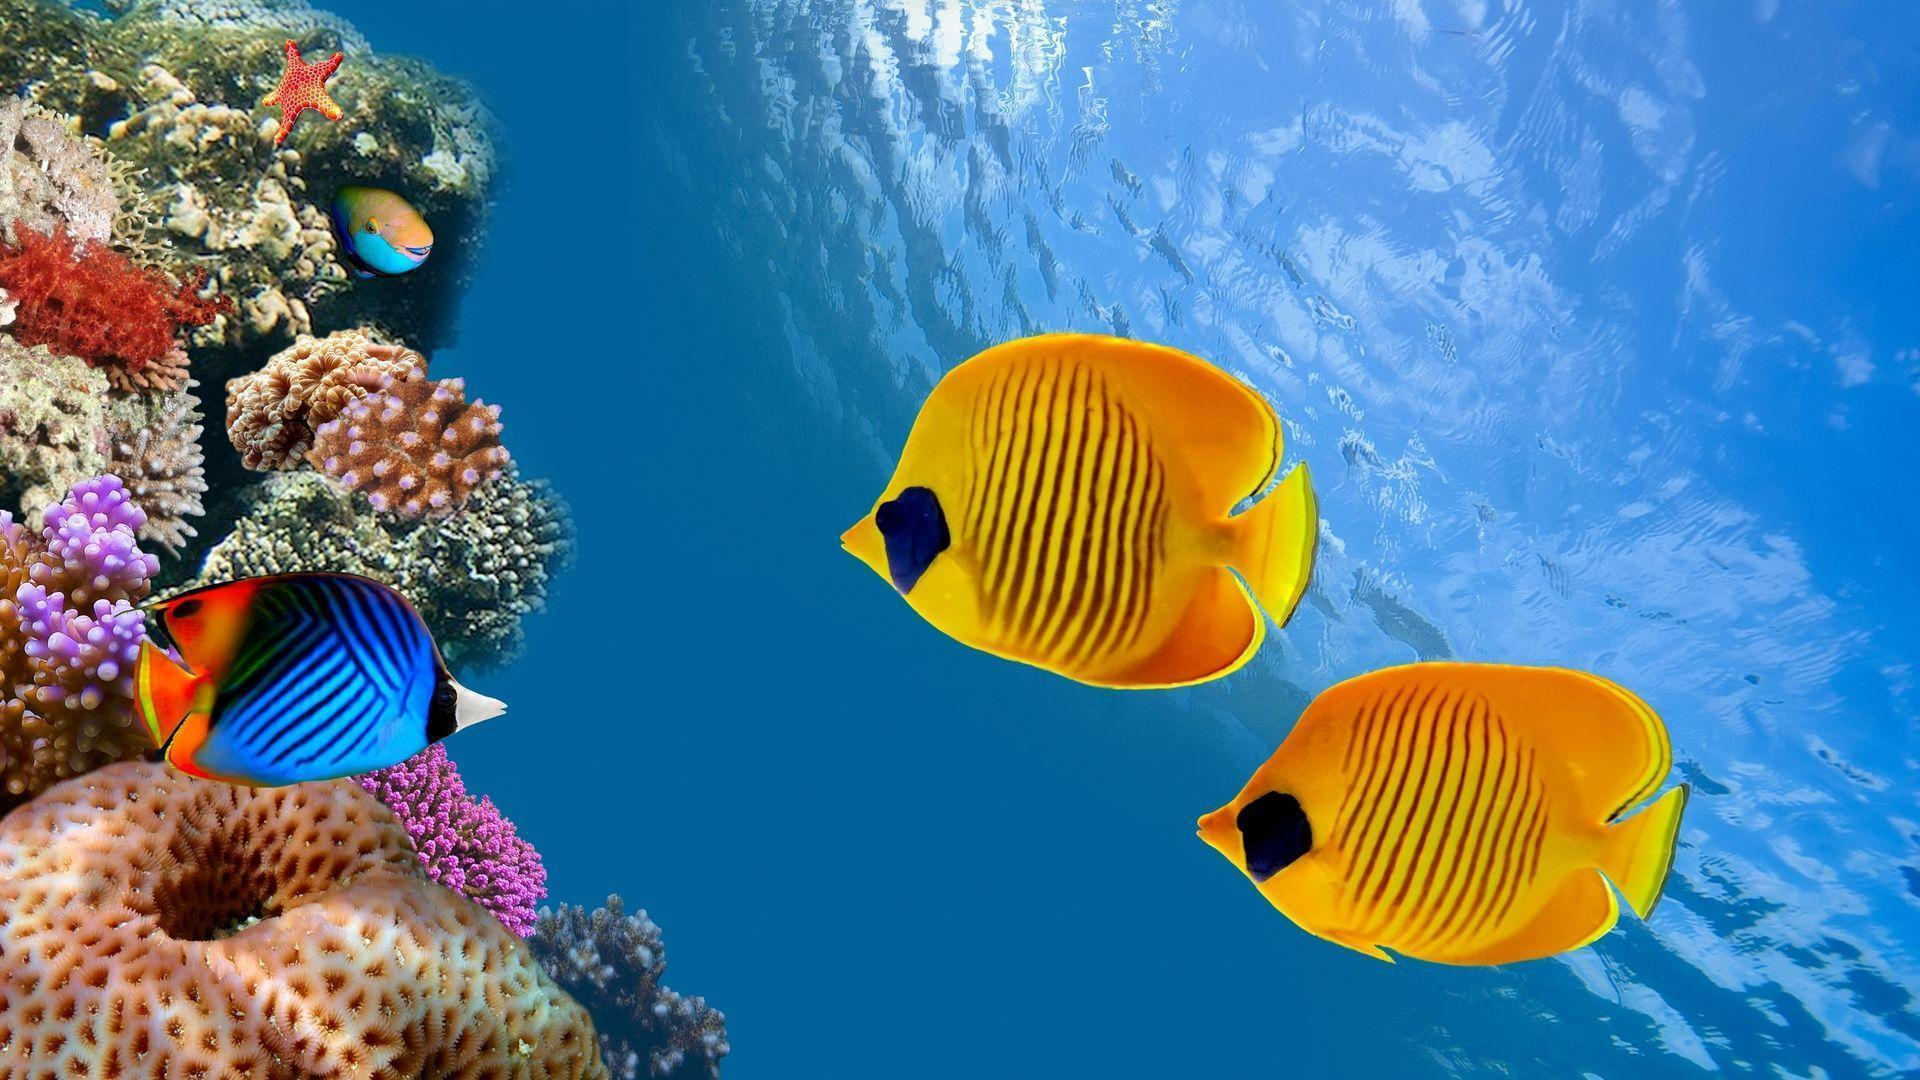 Fish Underwater Sea Image Hd Wallpapers Wallpapers Themes